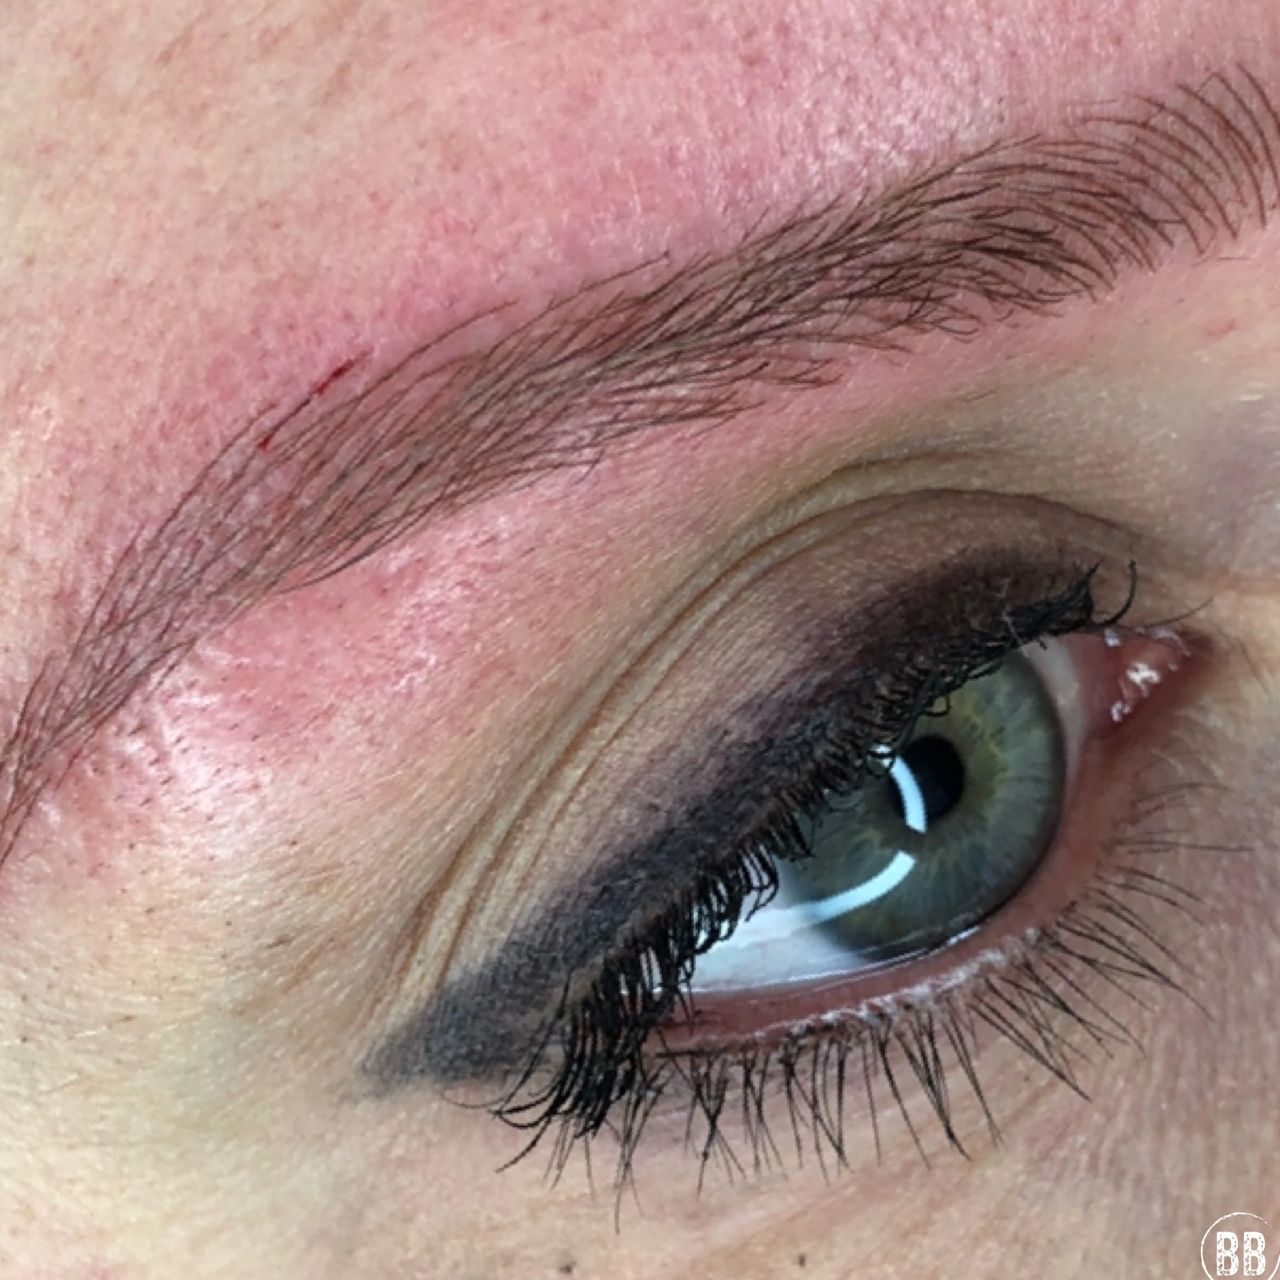 WTF is Microblading?